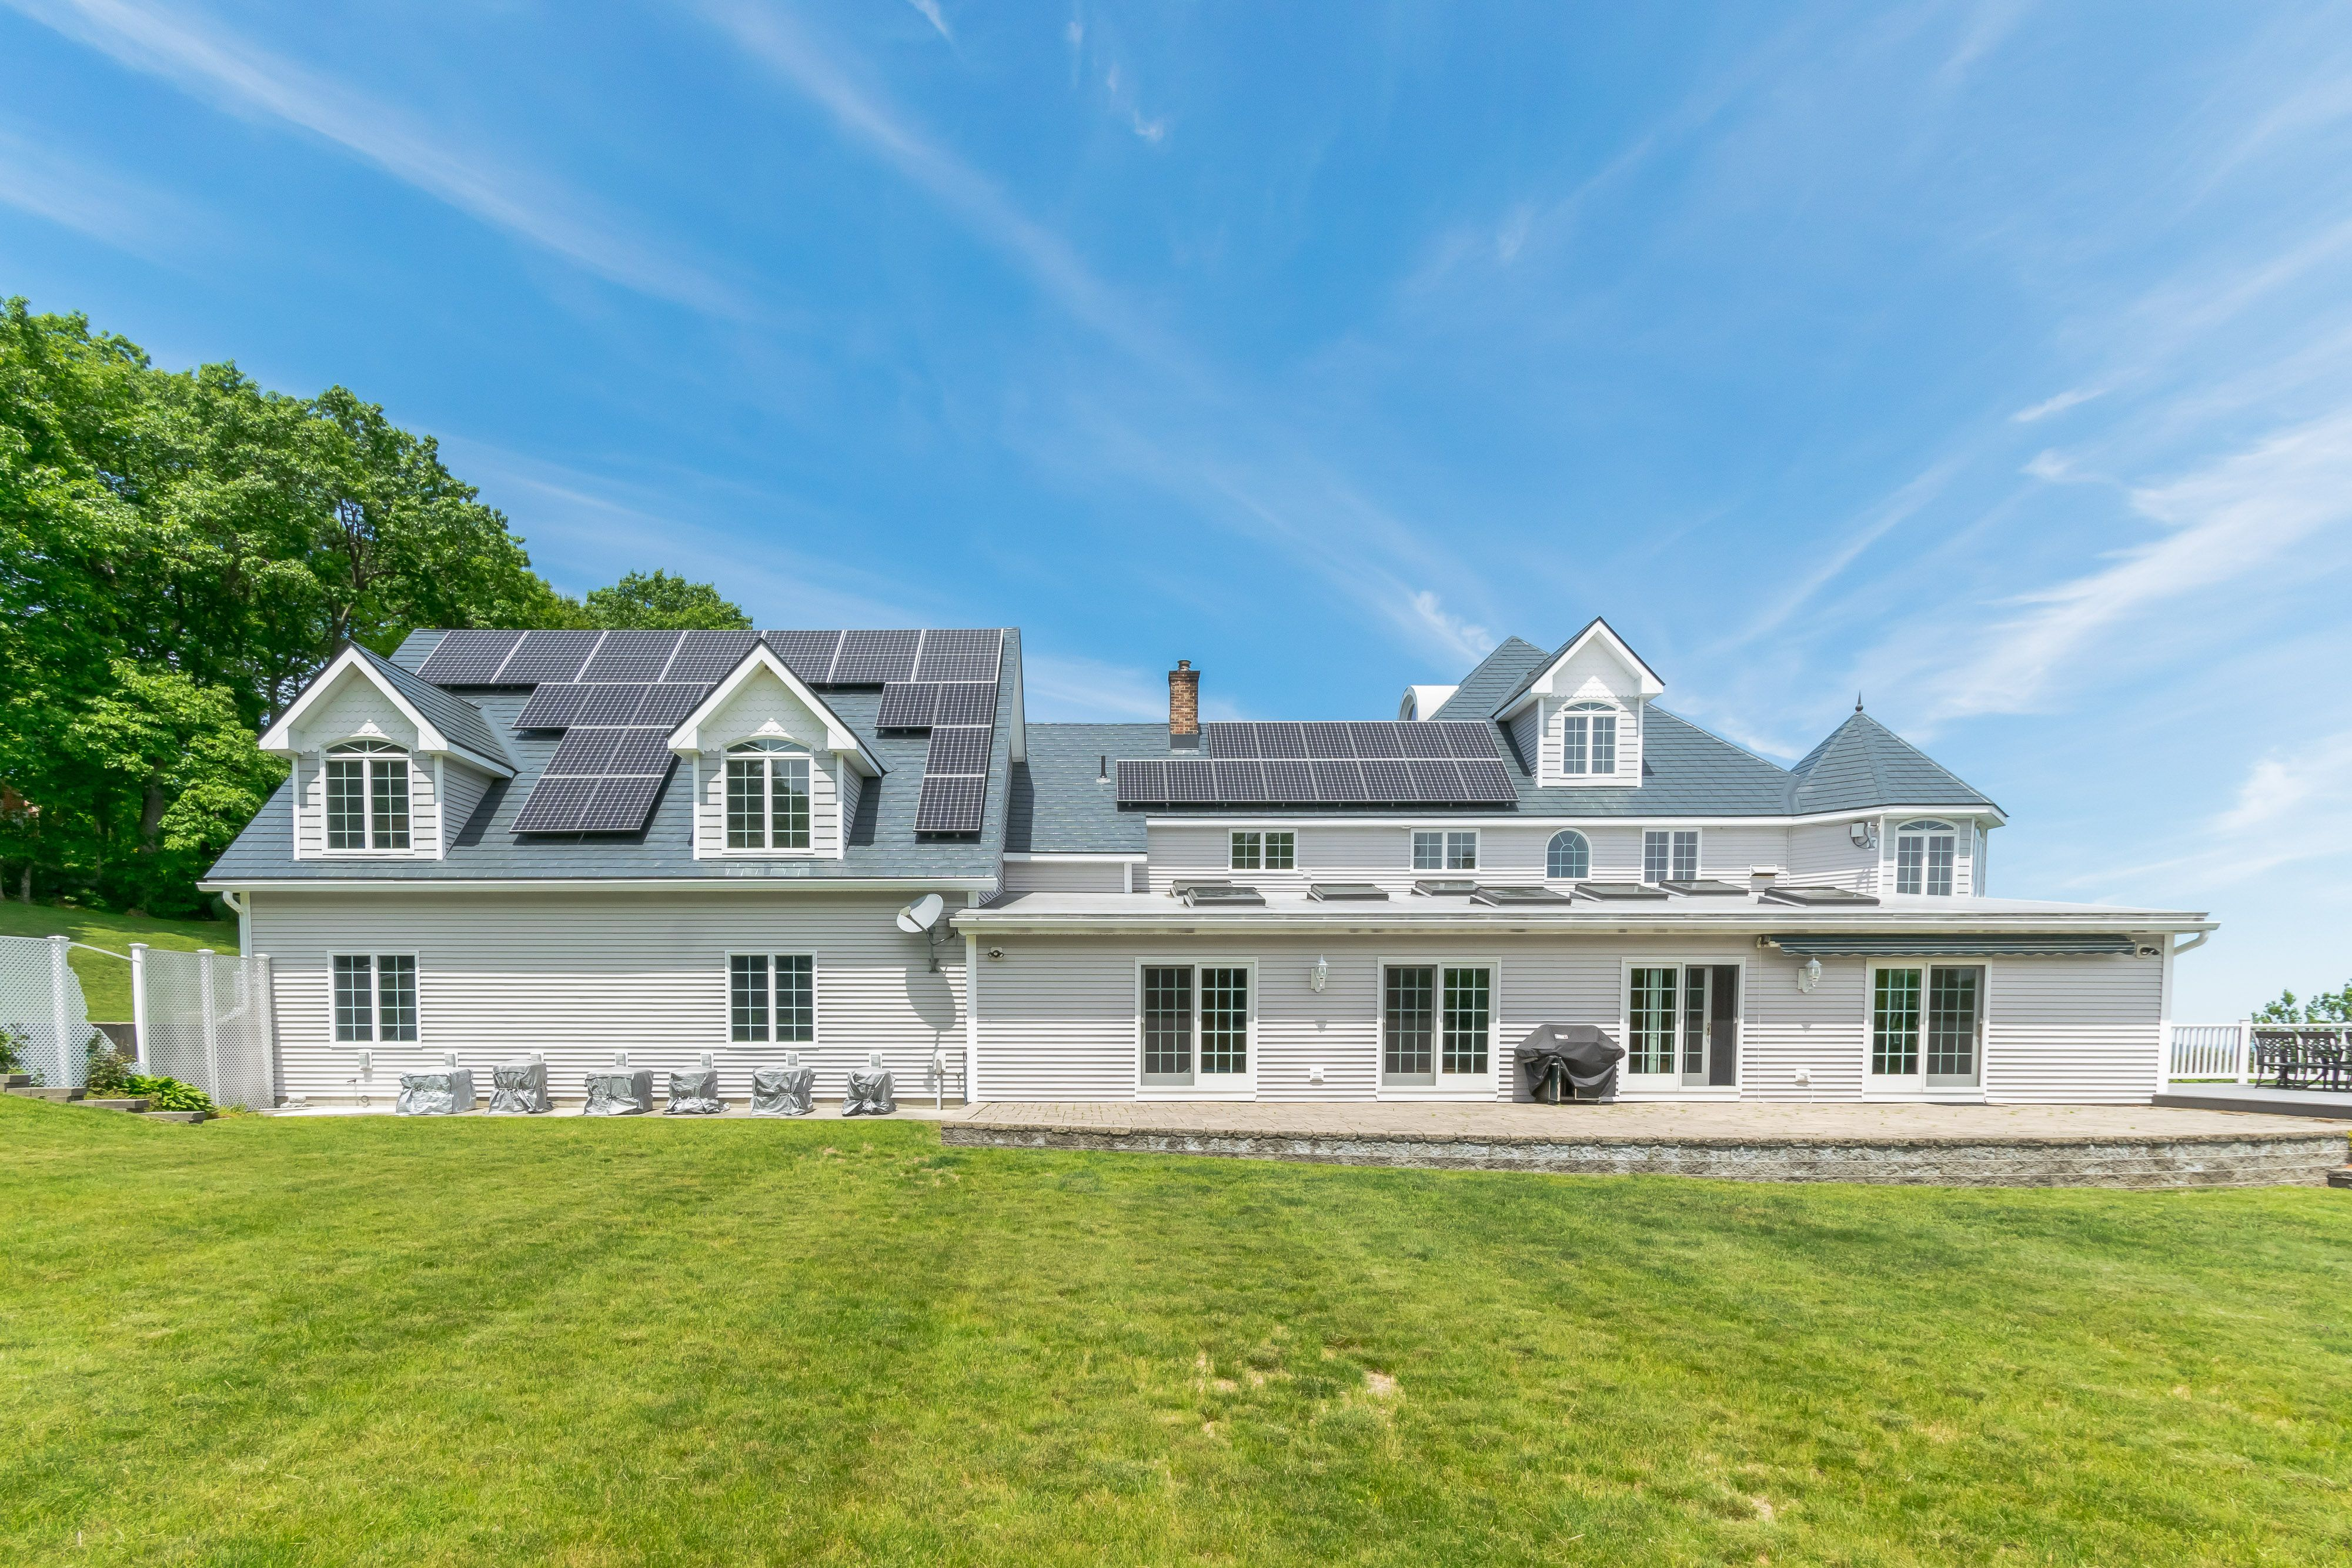 Princeton Ma Metal Roofing With Solar Panels Roofing Roofing Systems Aluminum Shingles